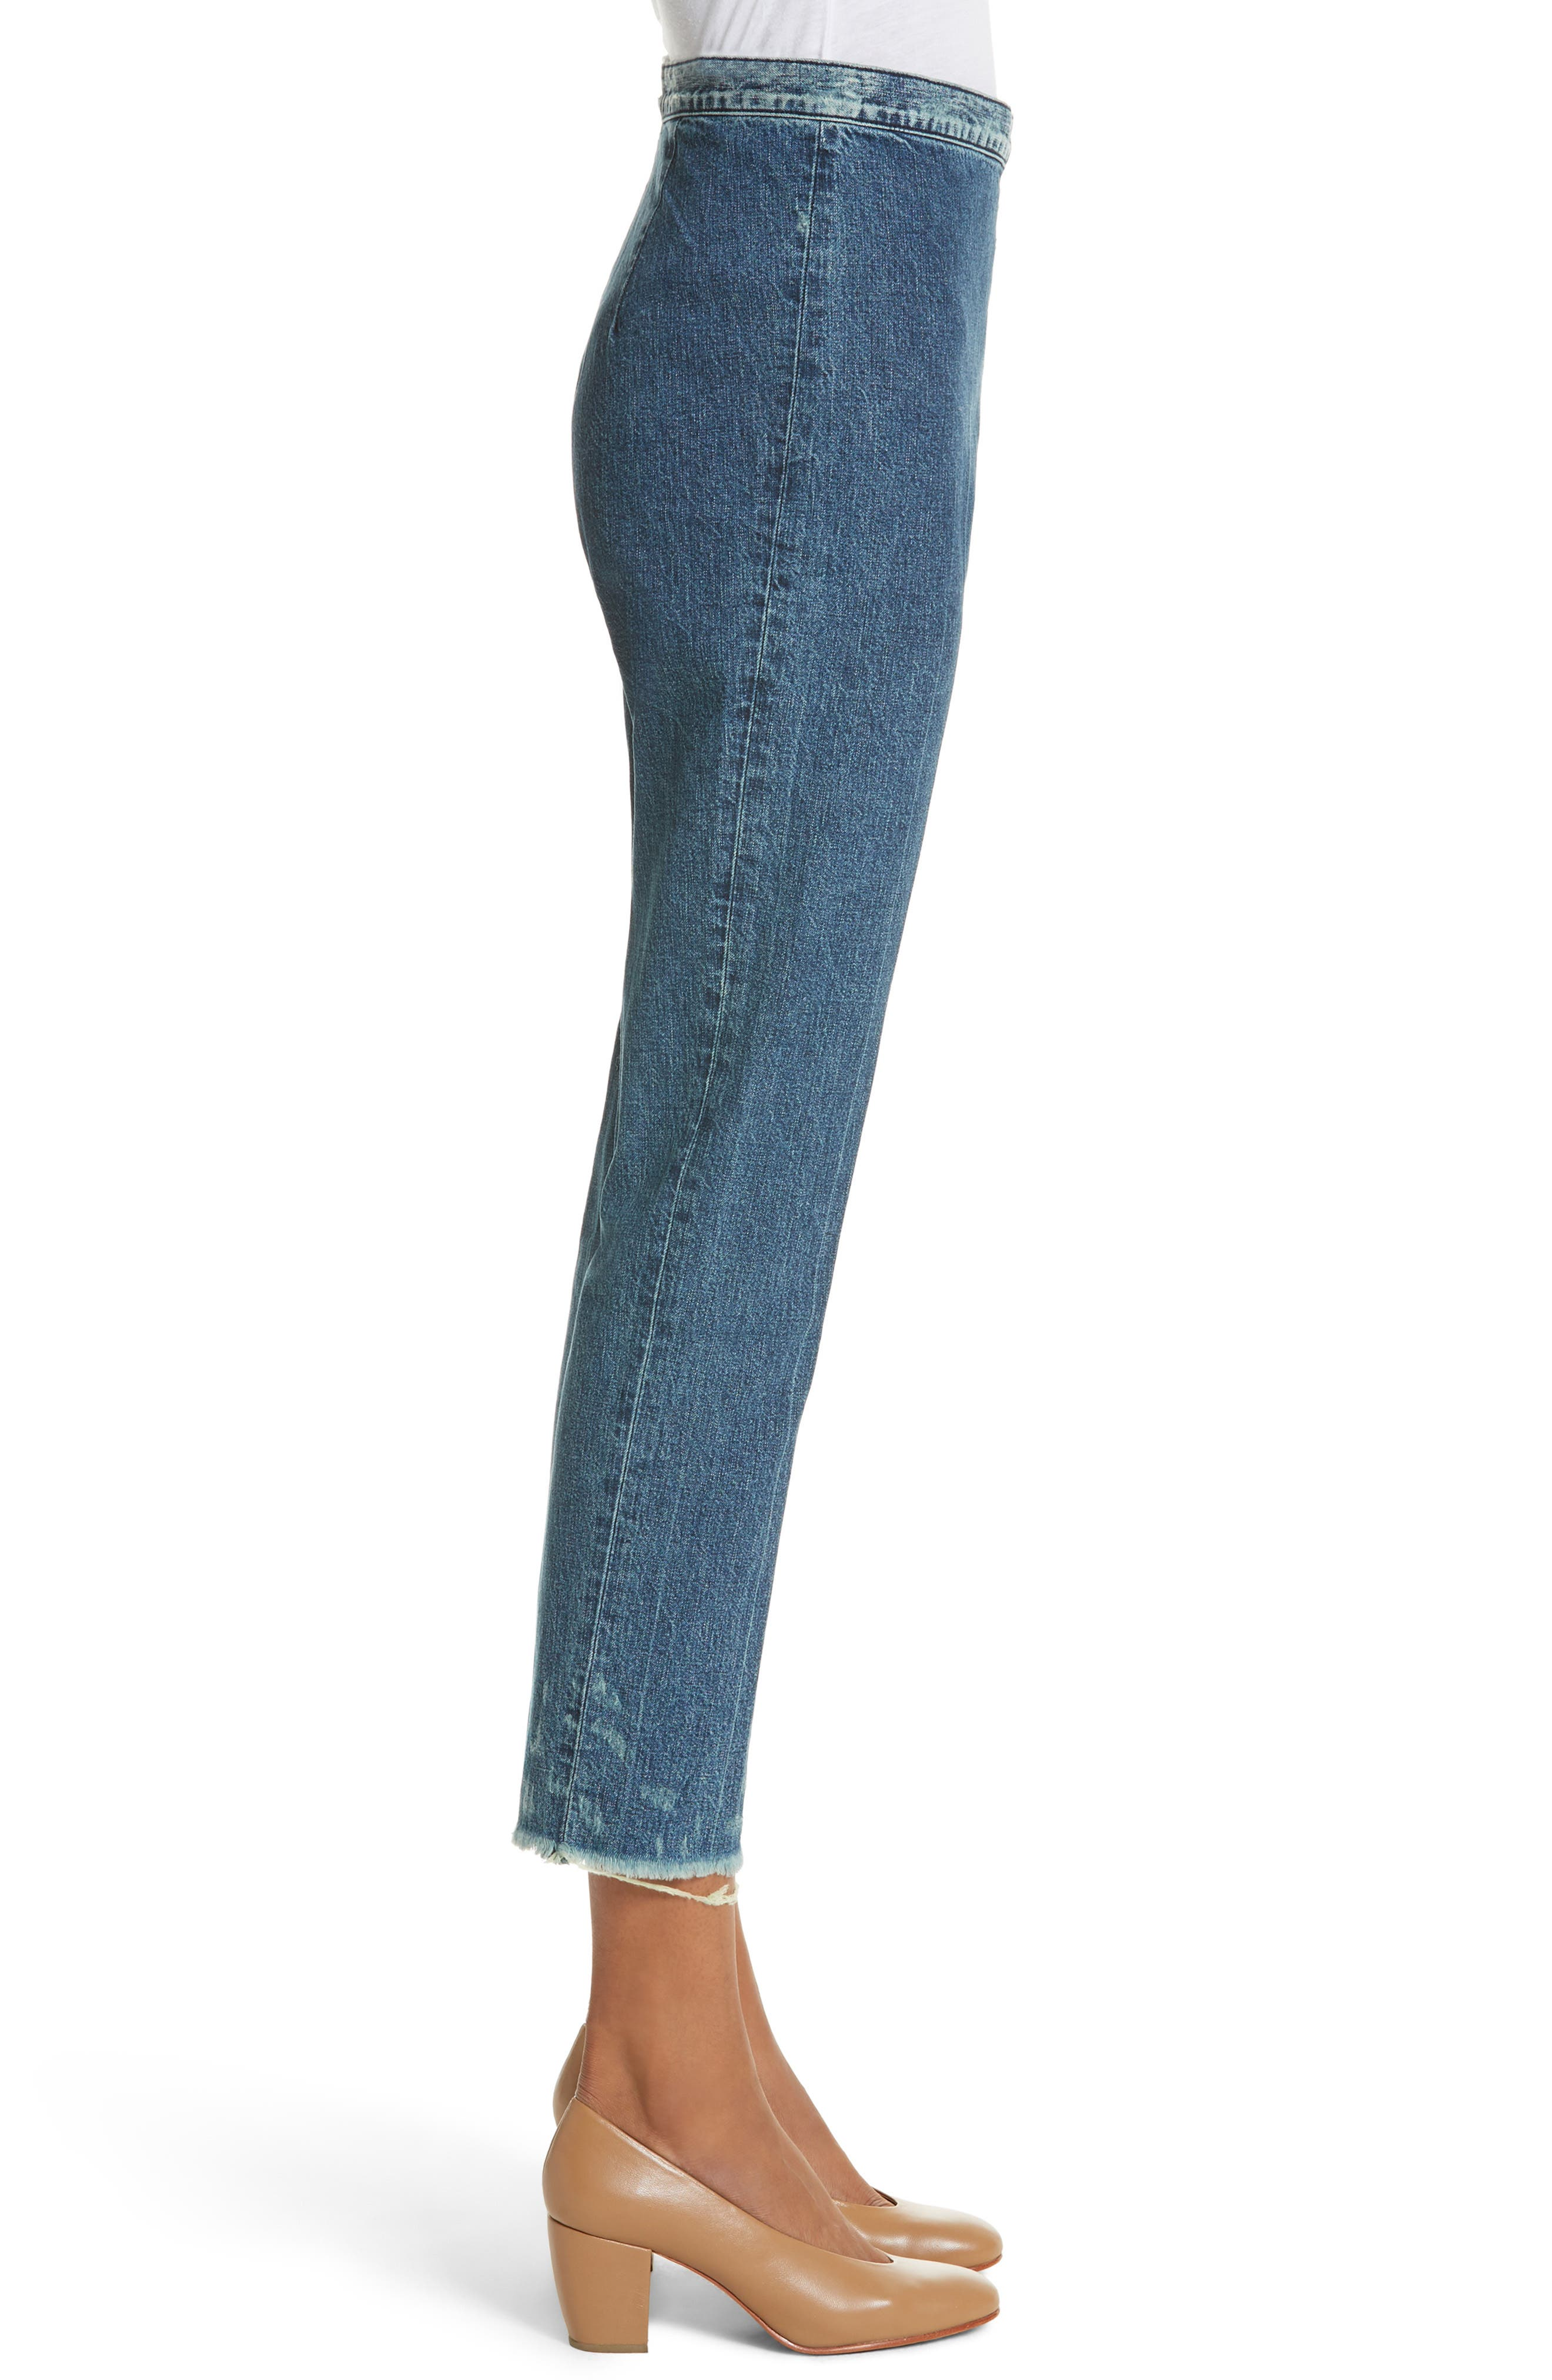 Fletcher Slim Straight Cropped Jeans,                             Alternate thumbnail 3, color,                             420